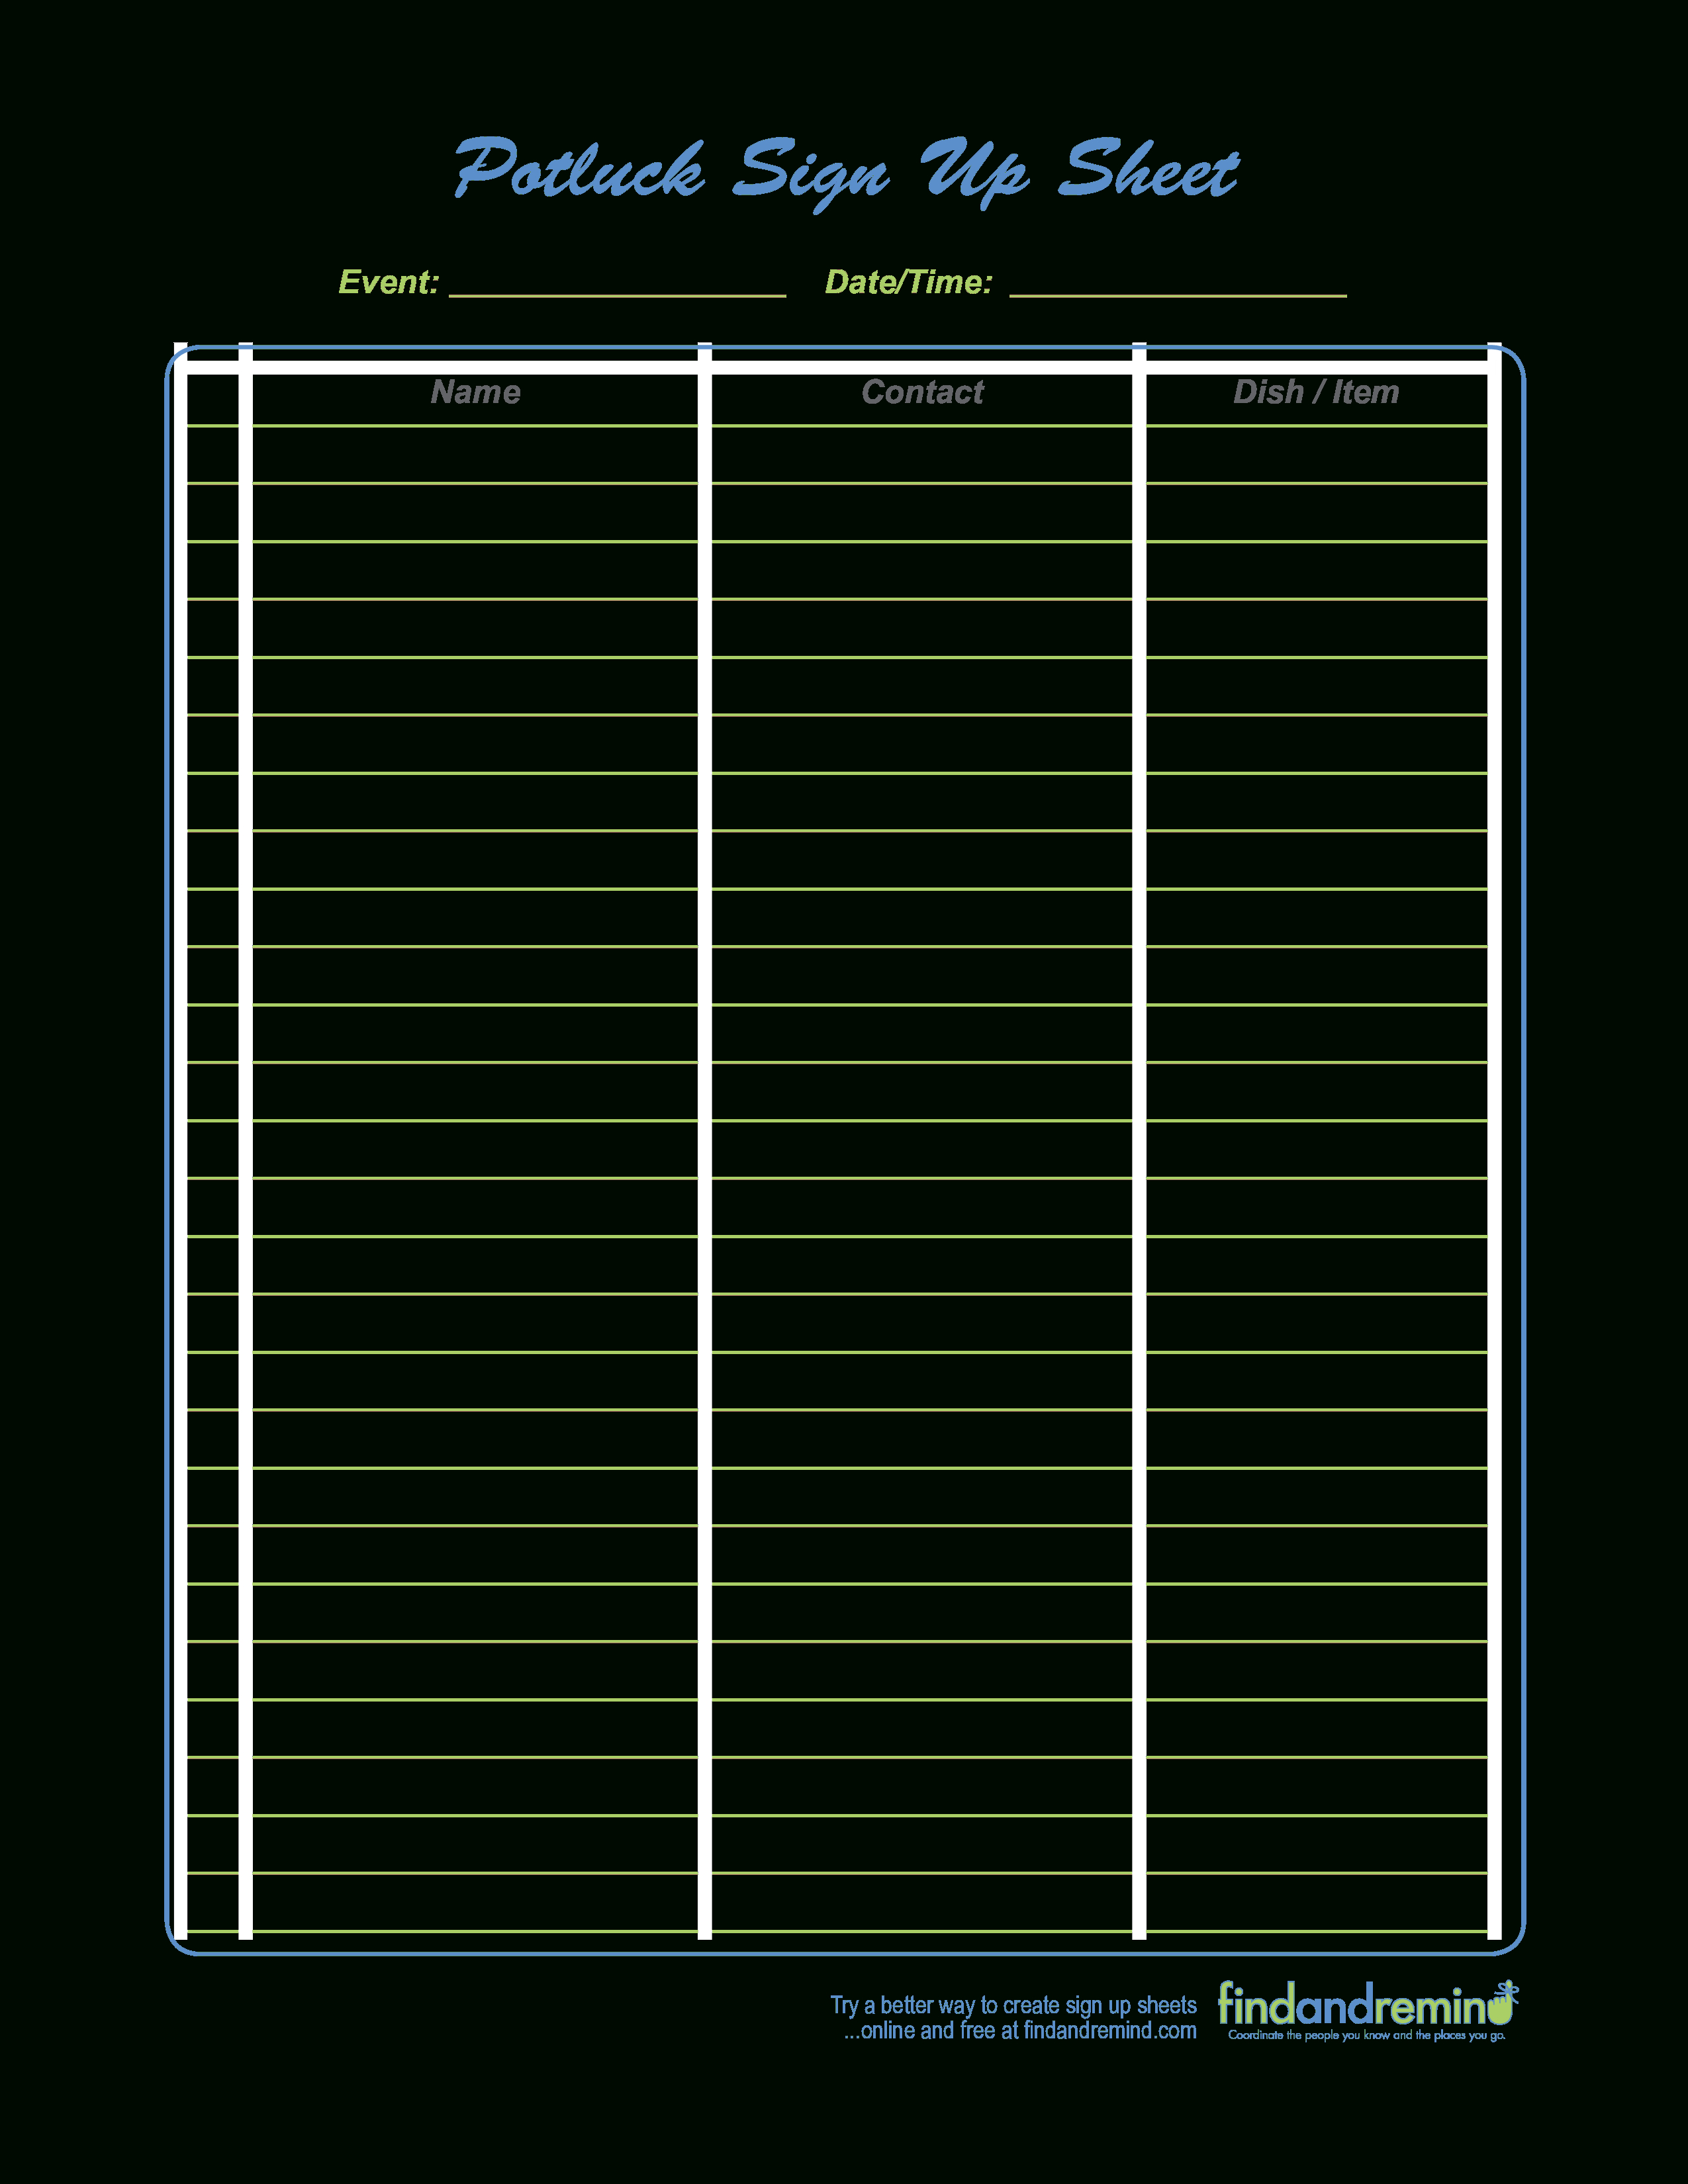 008 Template Ideas Sign Up Sheets Templates Free Office Potluck - Free Printable Sign Up Sheets For Potlucks